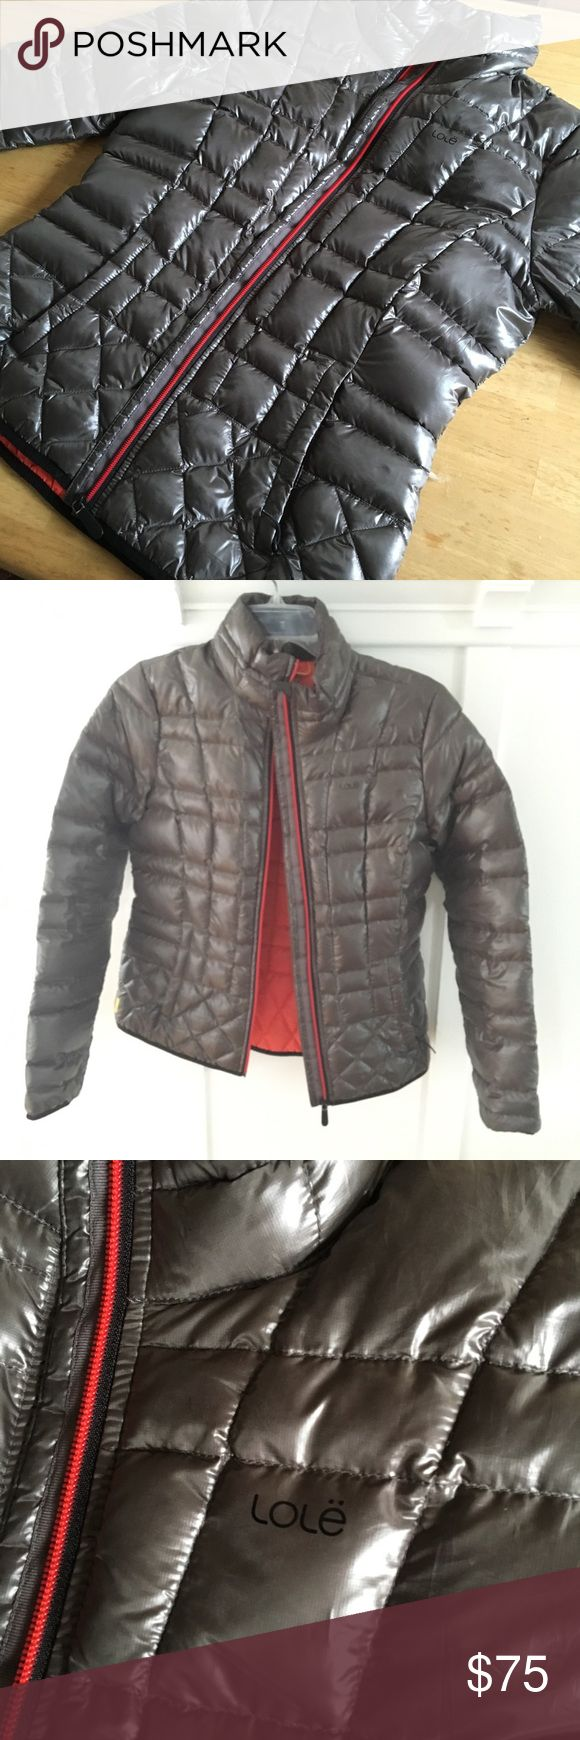 Lole Down Jacket Lole down jacket. Tapered style for feminine look, hardly worn - no signs of wear. Coral inside, inside mesh pocket. Exterior does have a shine to the fabric. Size M -fits 8-10. Lole Jackets & Coats Puffers